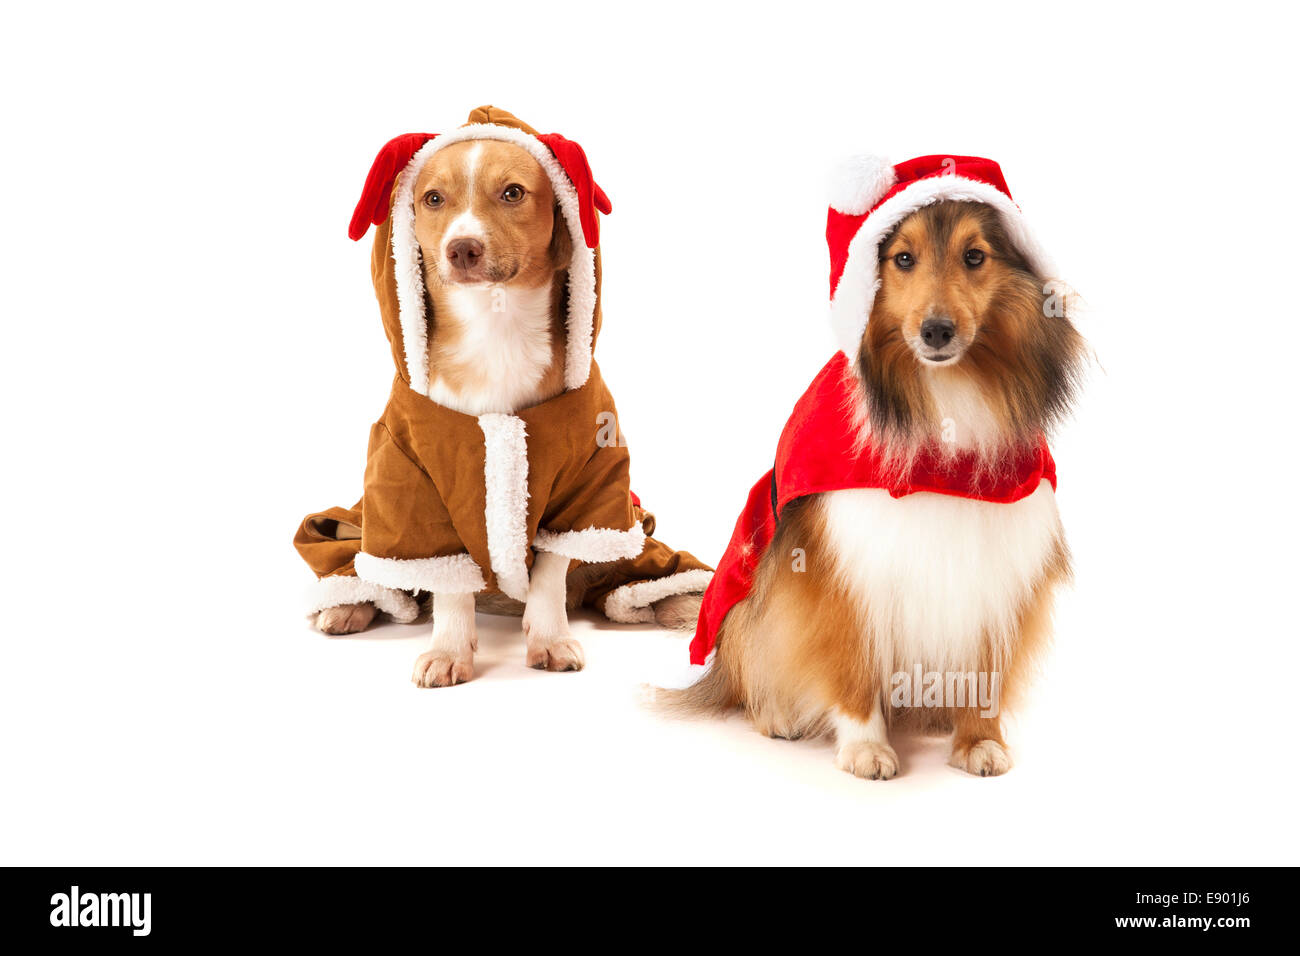 Portrait of two dogs wearing santa costume over white background - Stock Image